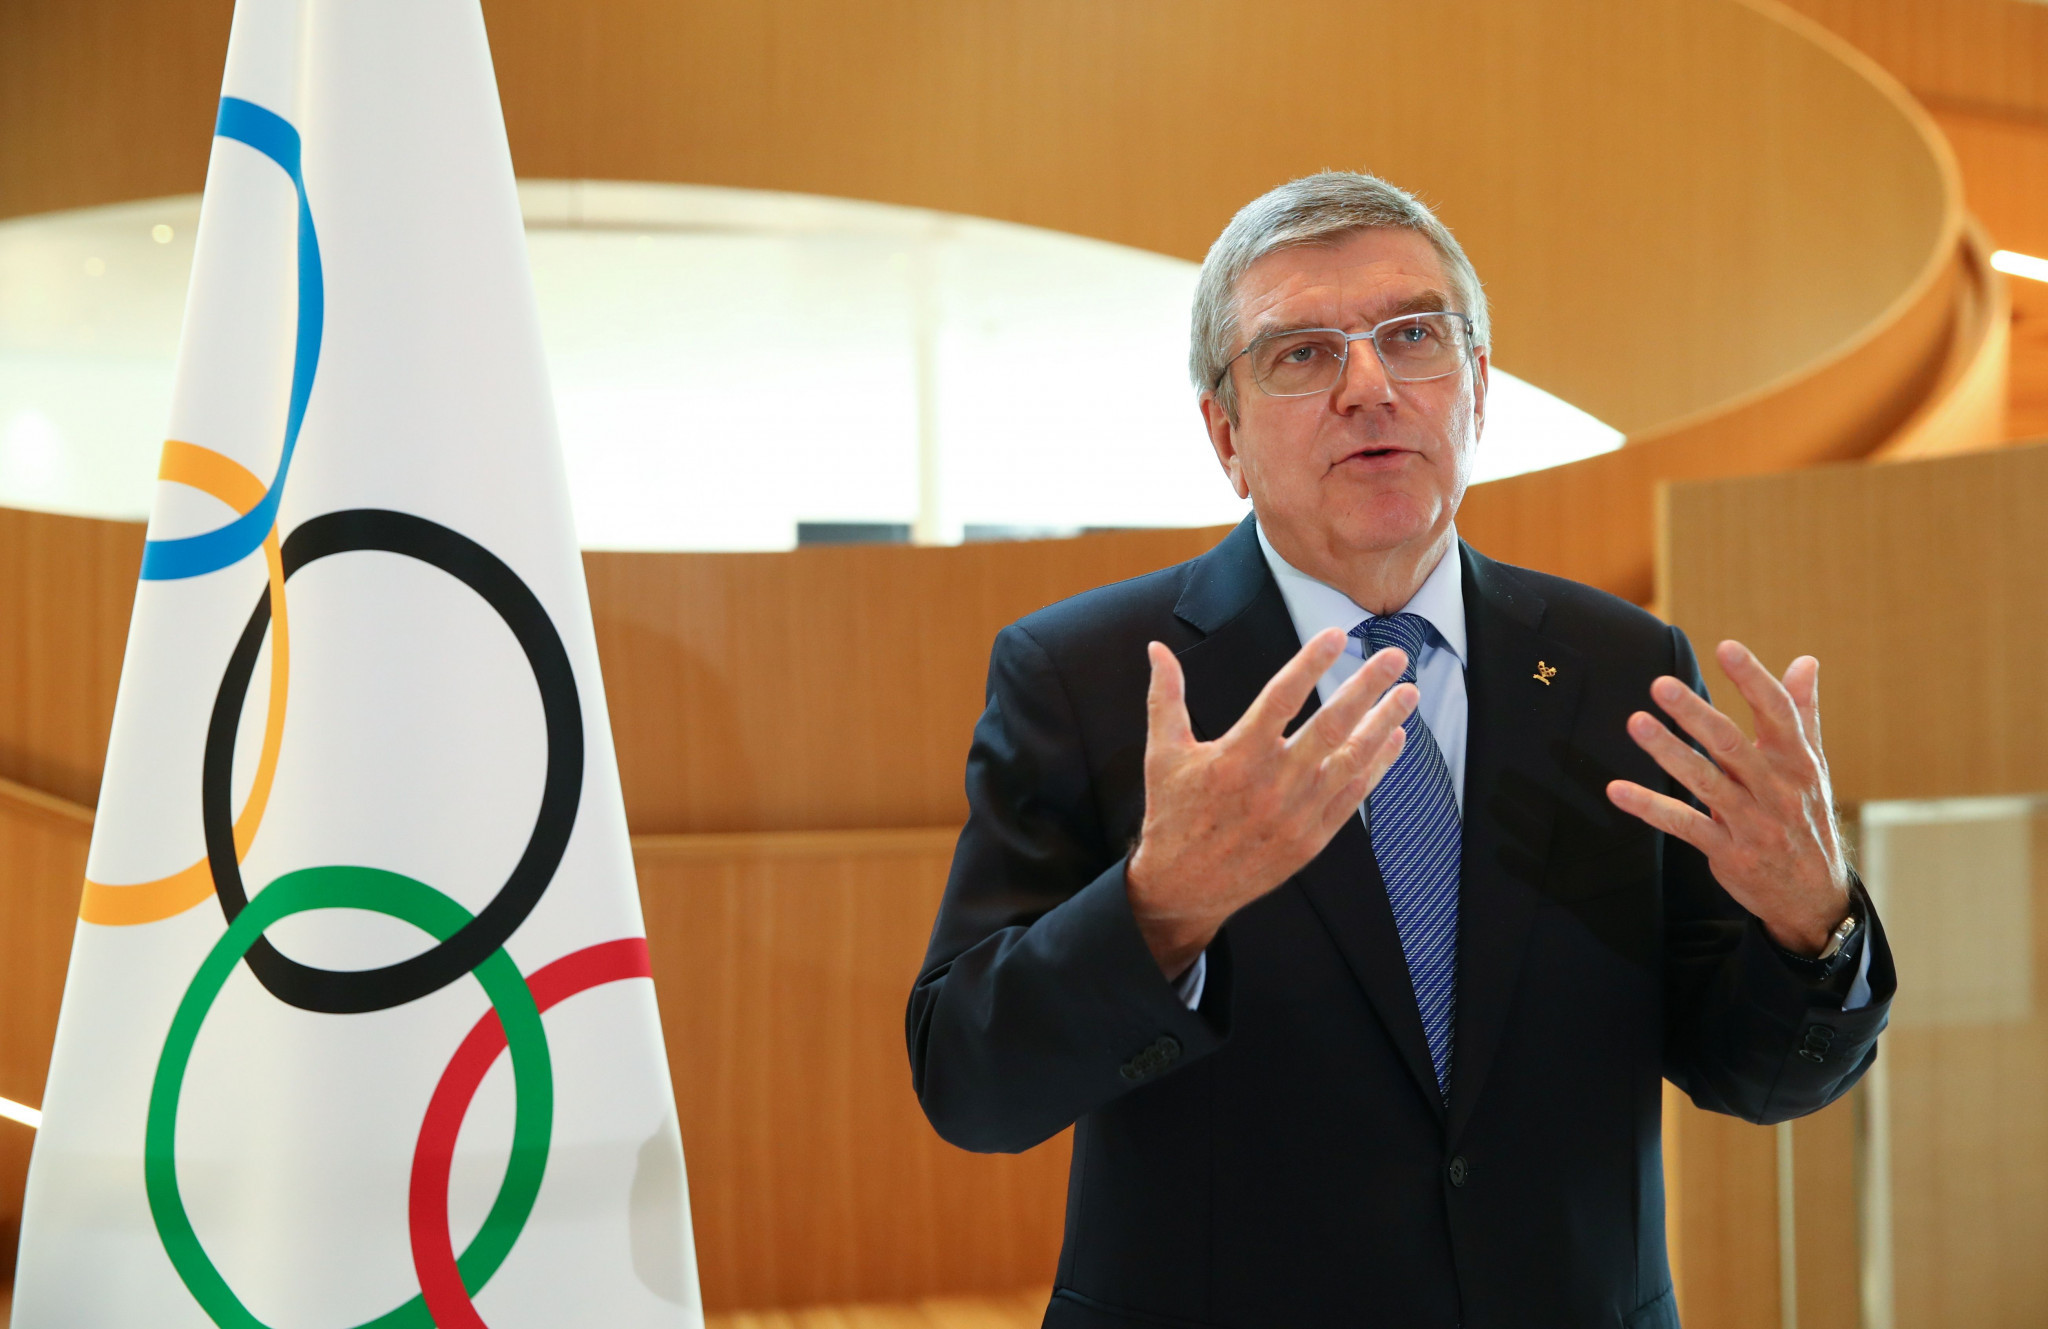 IOC President Bach set to be re-elected unopposed at virtual Session